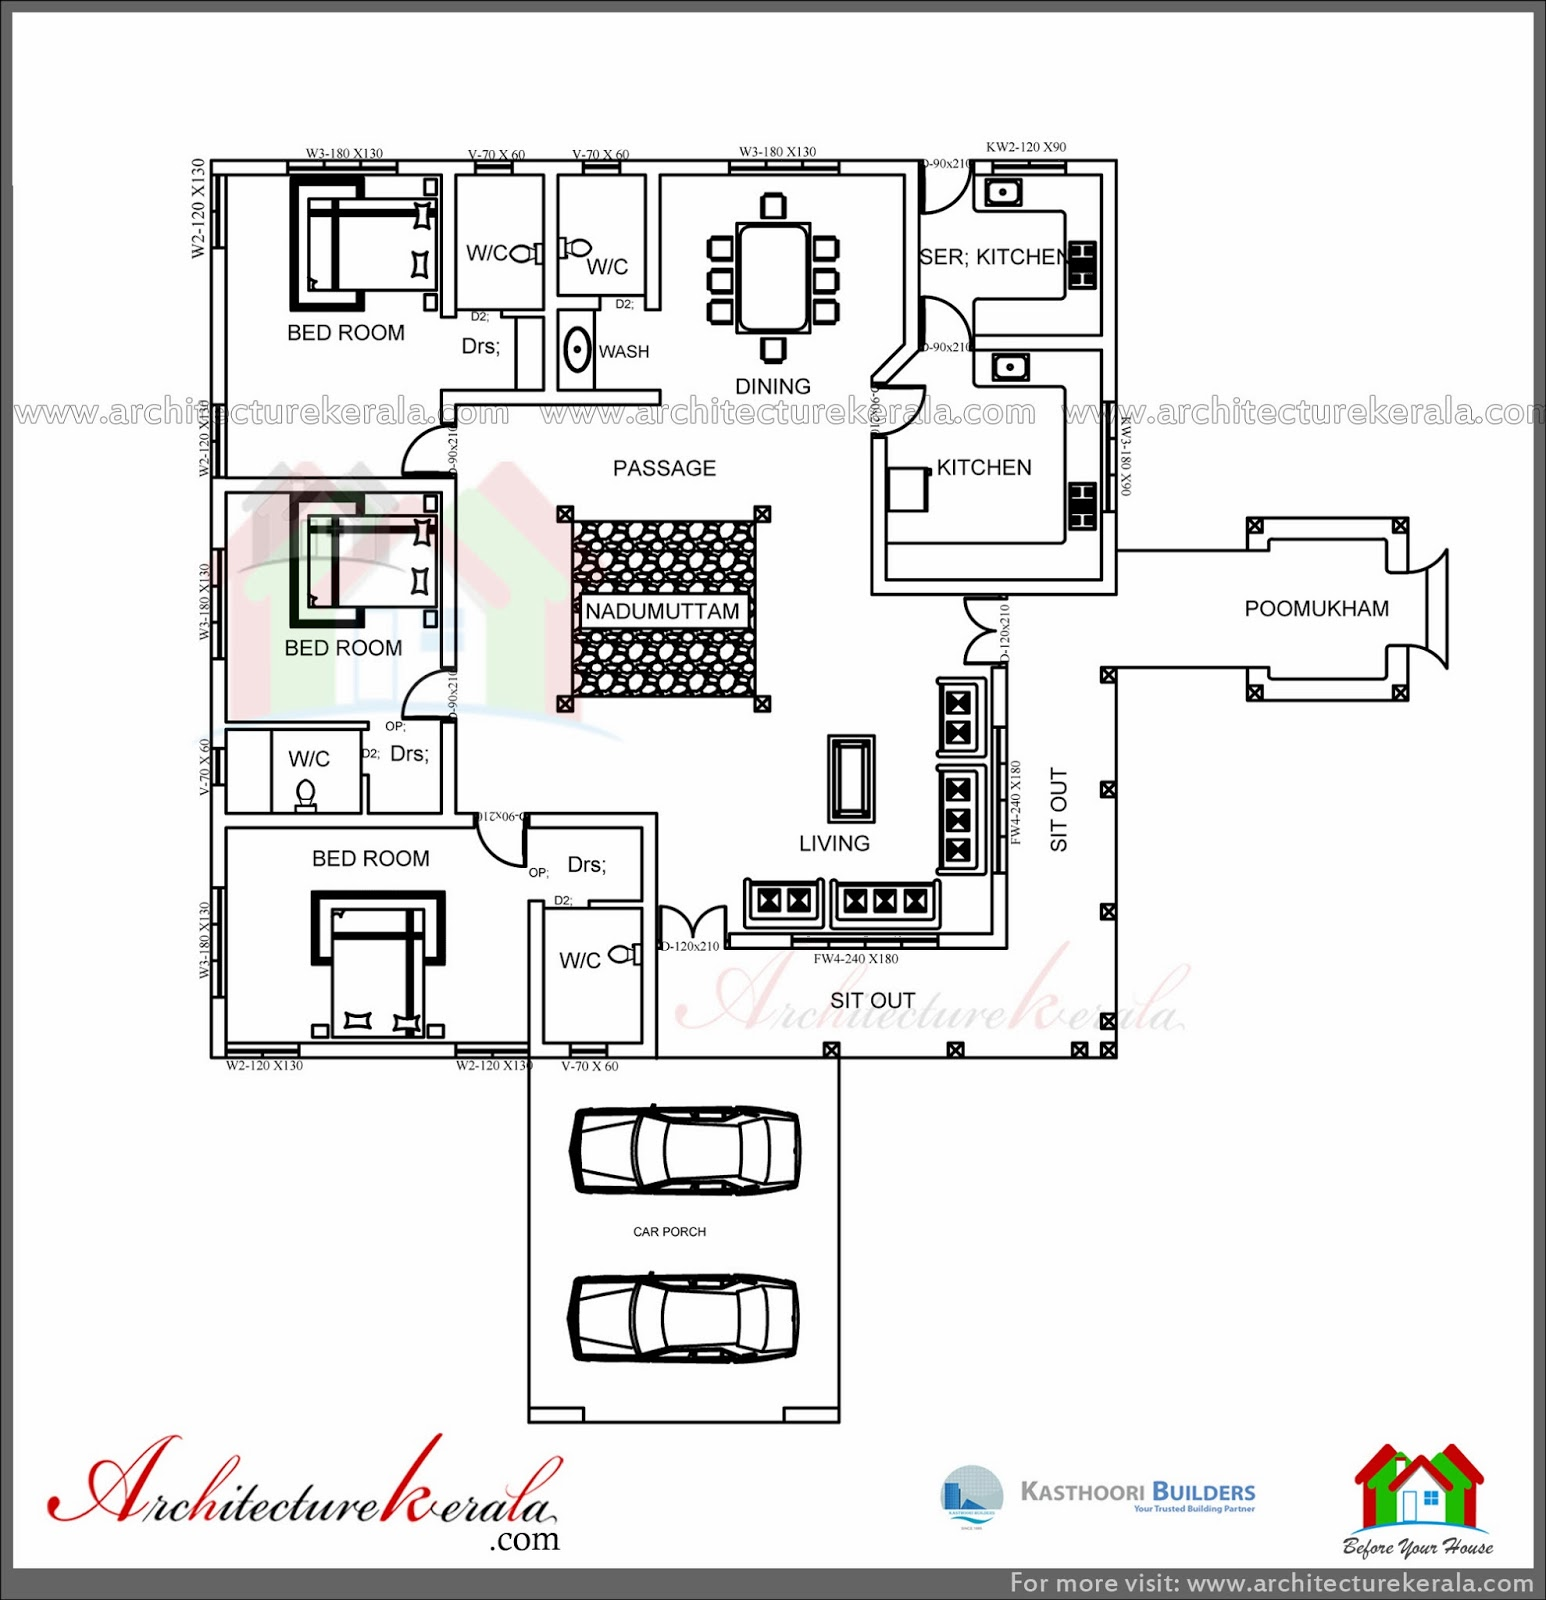 Kerala Model Home Plans: TRADITIONAL HOUSE PLAN WITH NADUMUTTAM AND POOMUKHAM